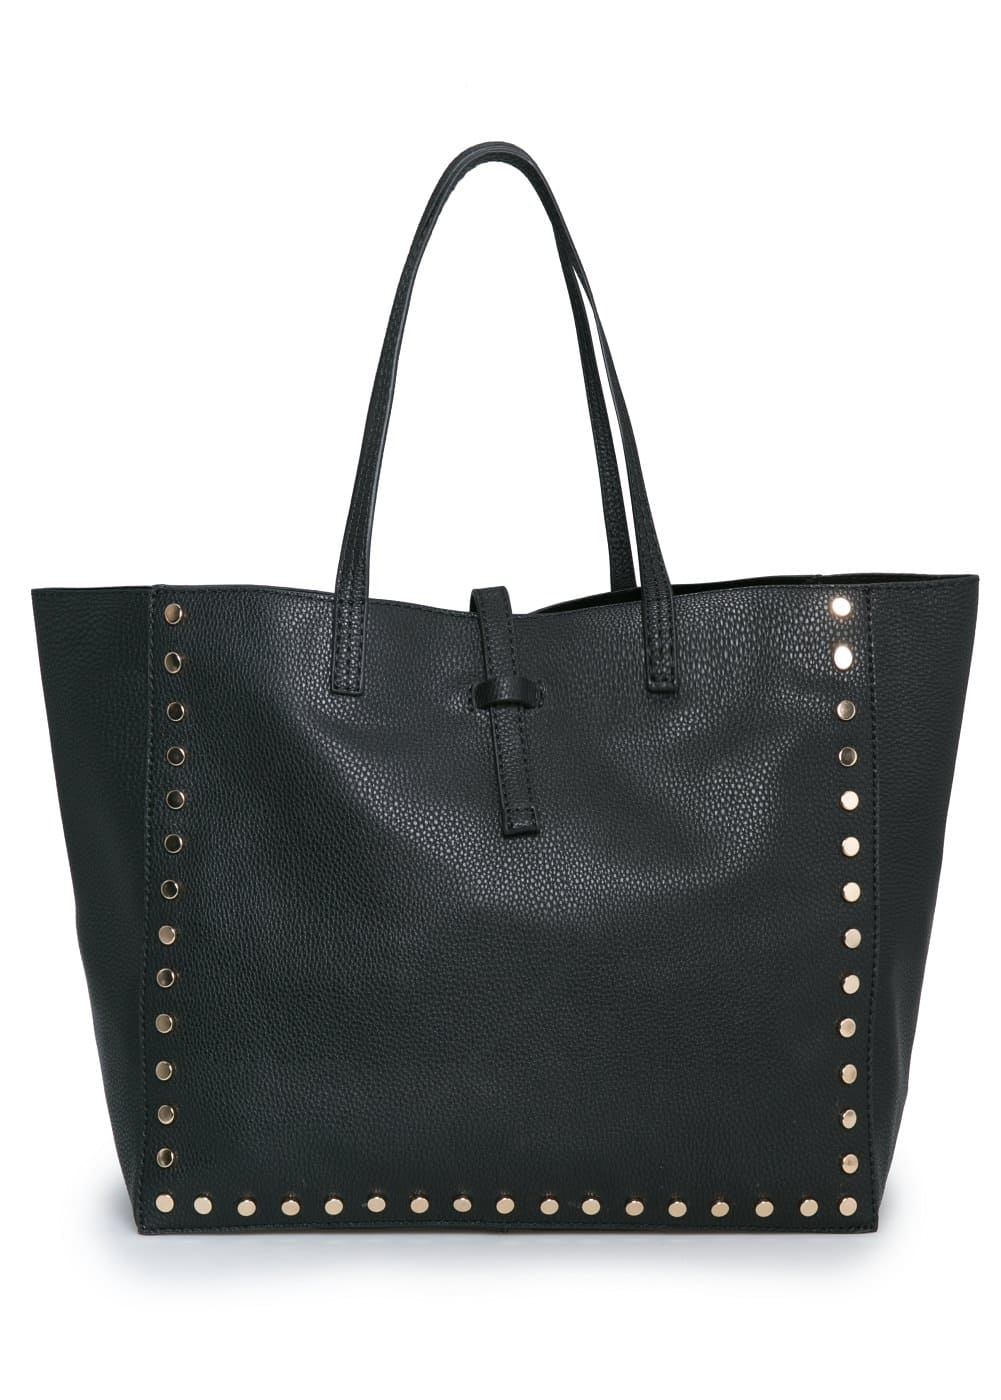 Rivet shopper bag